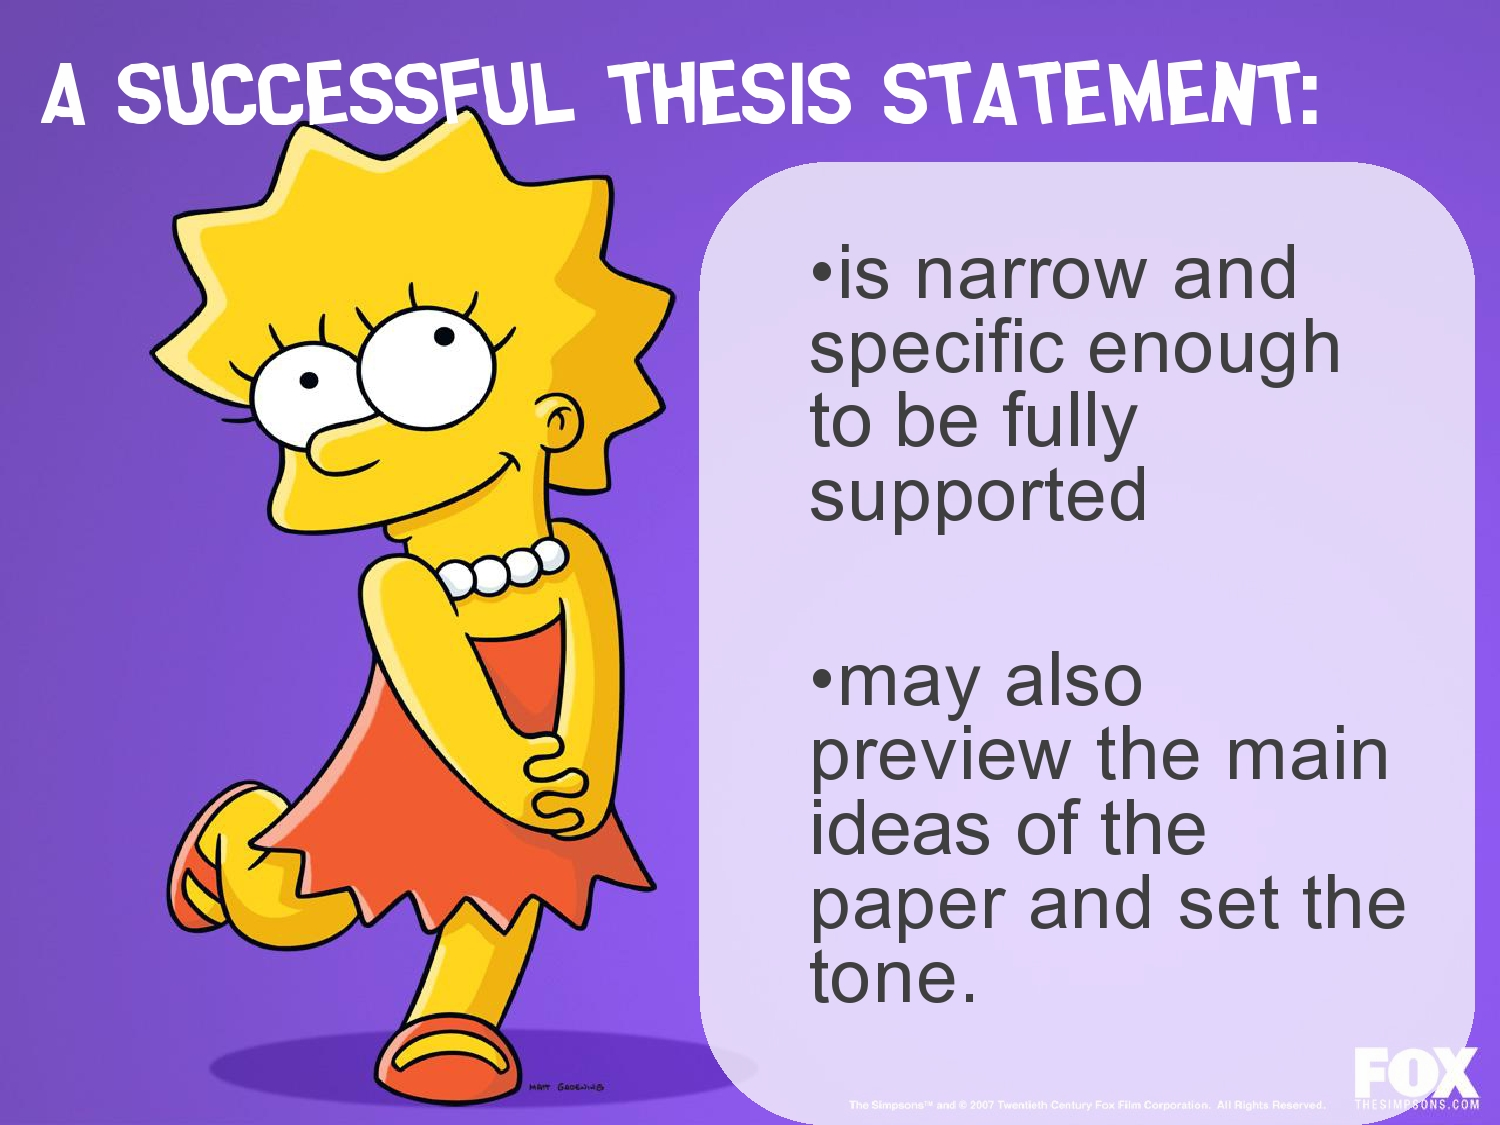 Writing Excellent Thesis Statements | WRTG 213 – Spring 2019